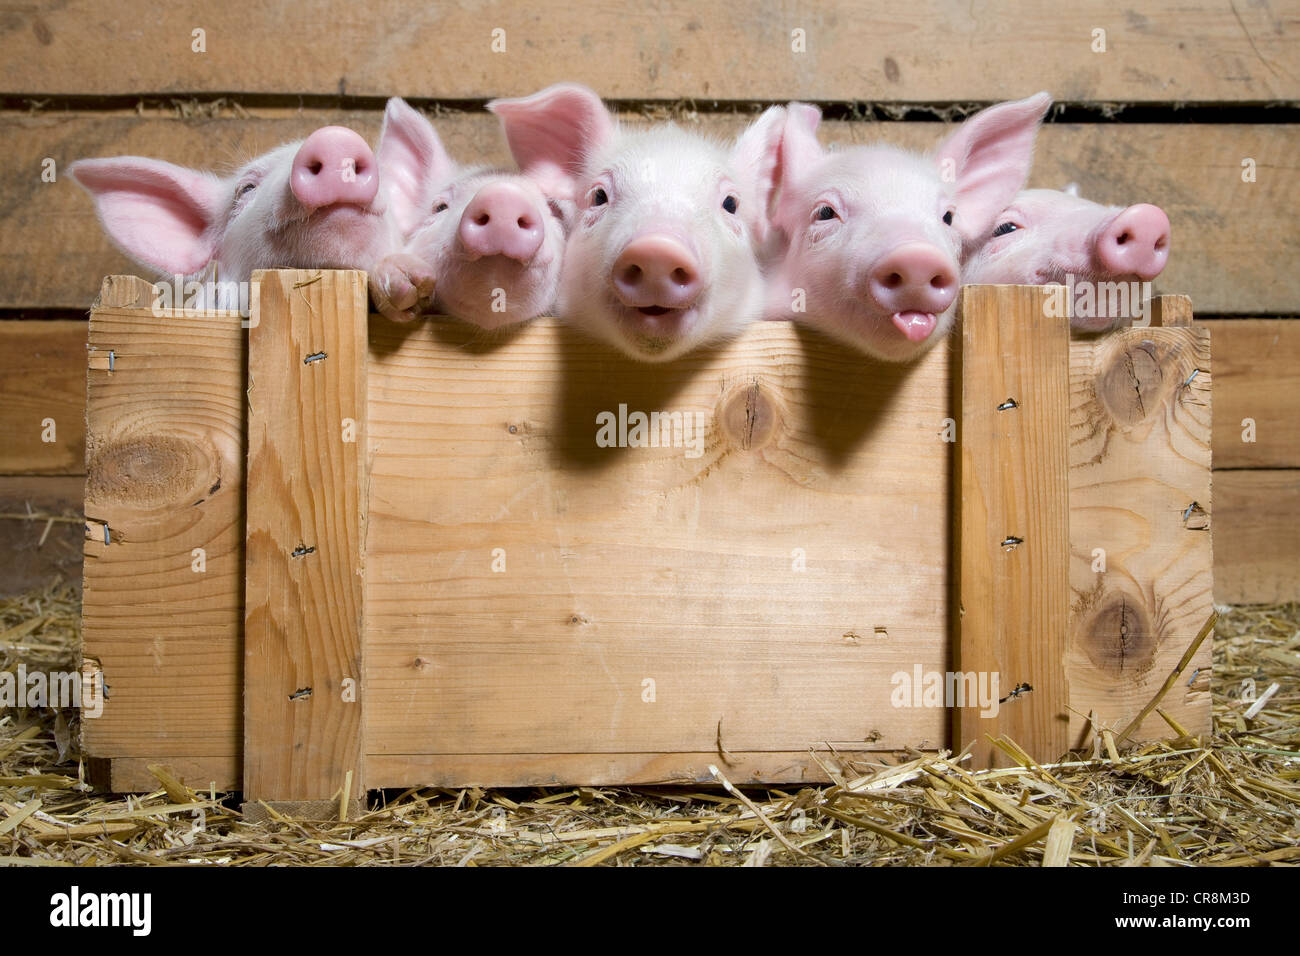 Five piglets in wooden crate - Stock Image